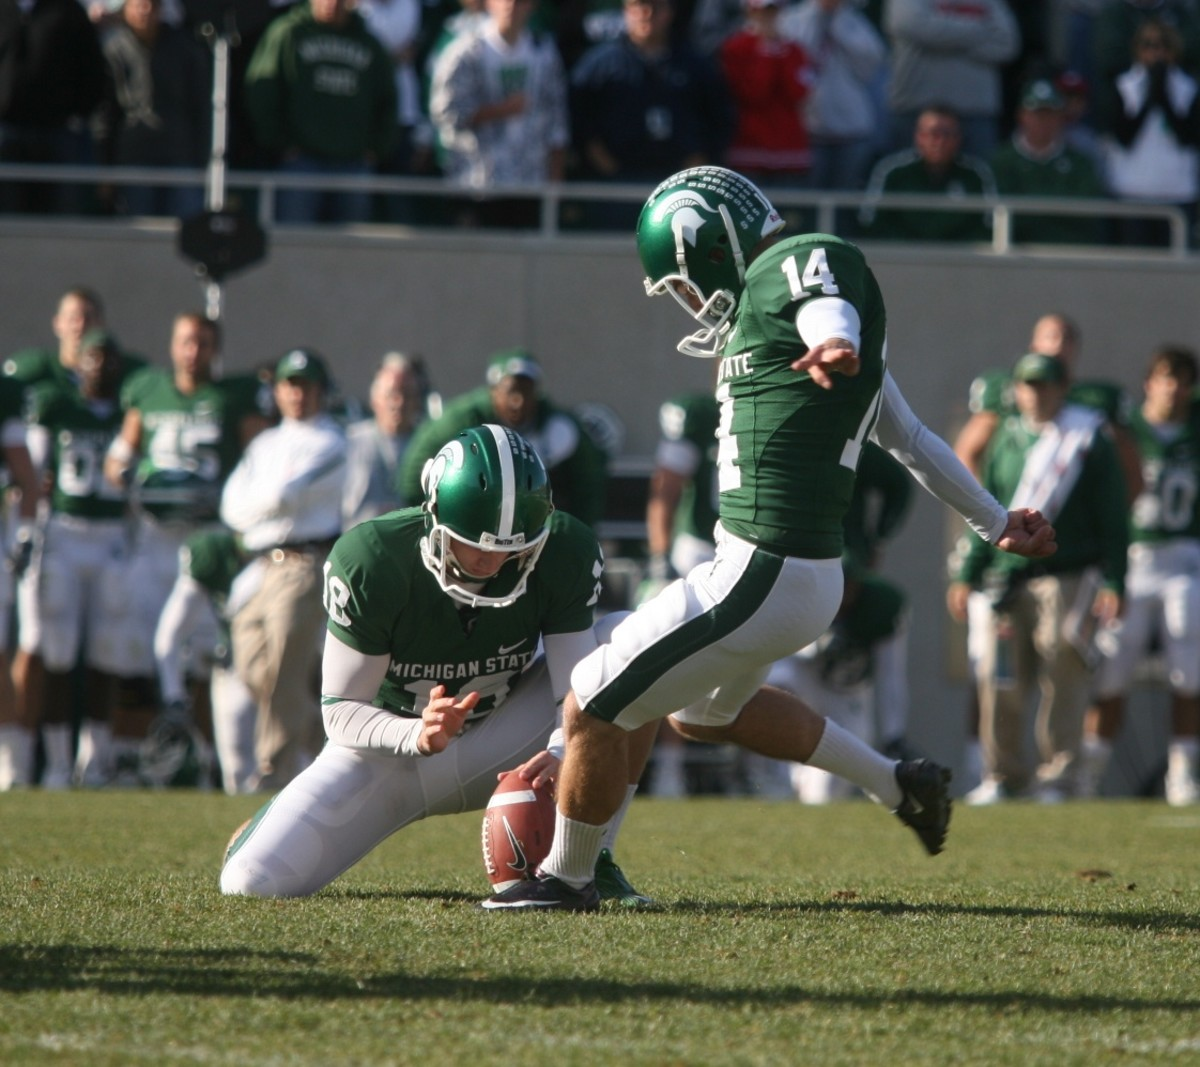 Aaron Bates and Brett Swenson Combine for a Great Win over Wisconsin in 2008!  Photo Courtesy of Bill Marklevits.